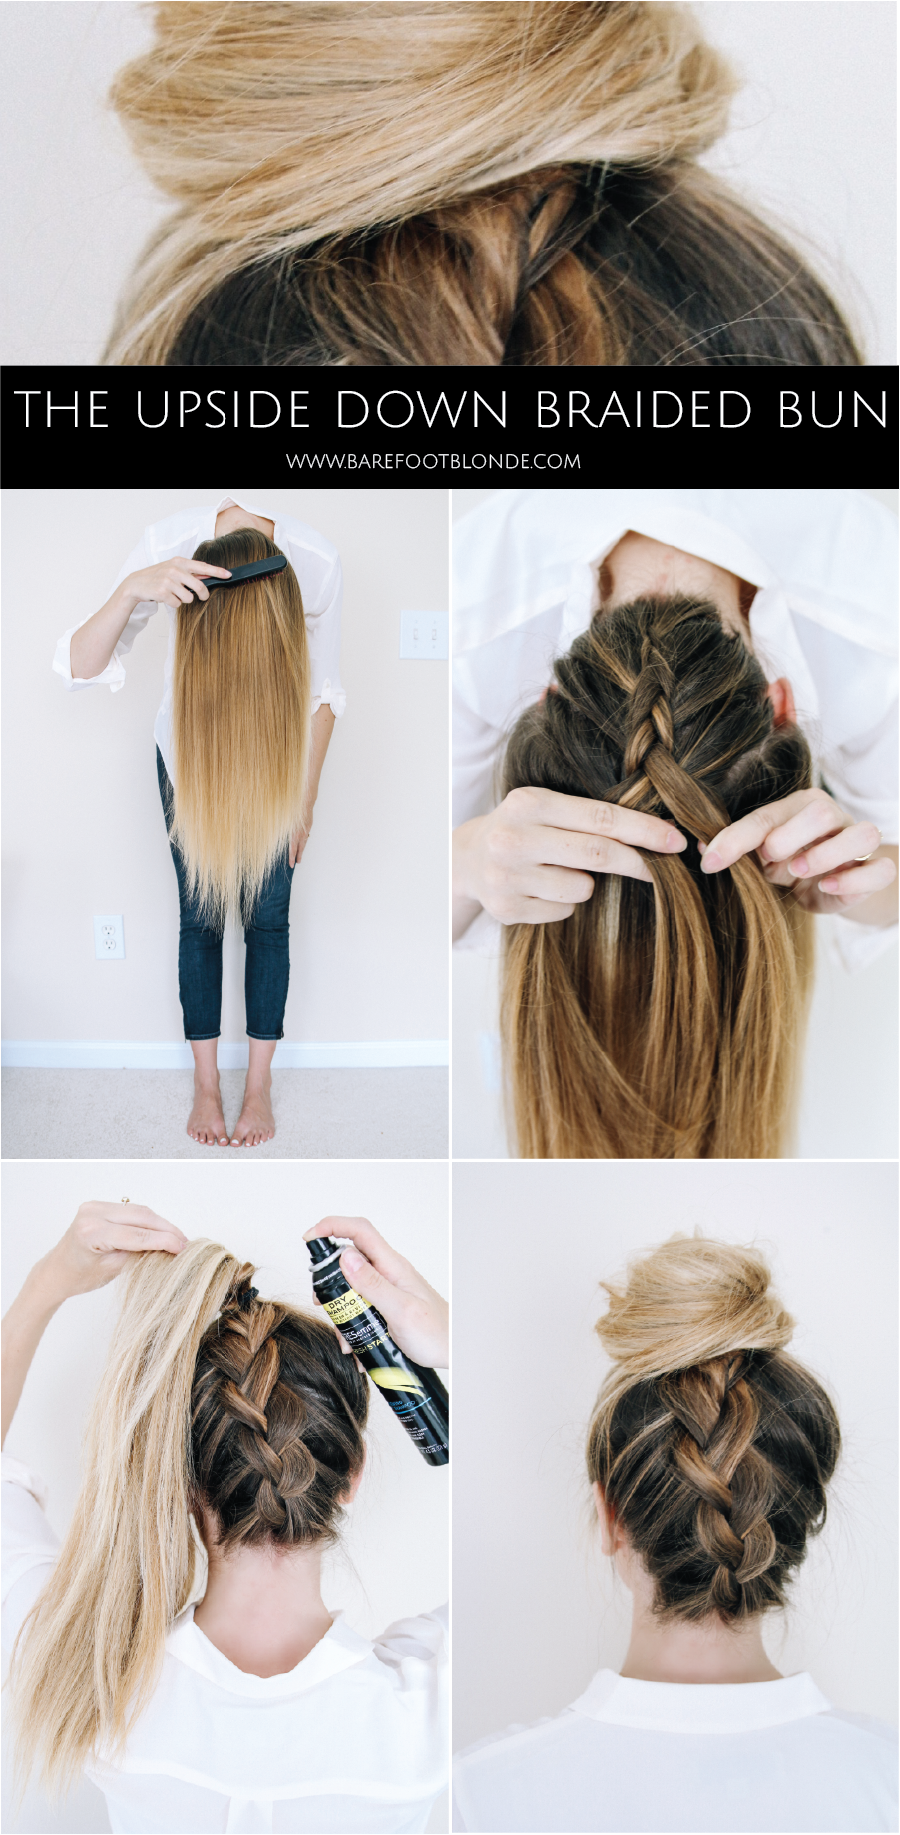 15 Easy Everyday Hairstyles To Try Hair Styles Model Hair Braided Hairstyles Easy